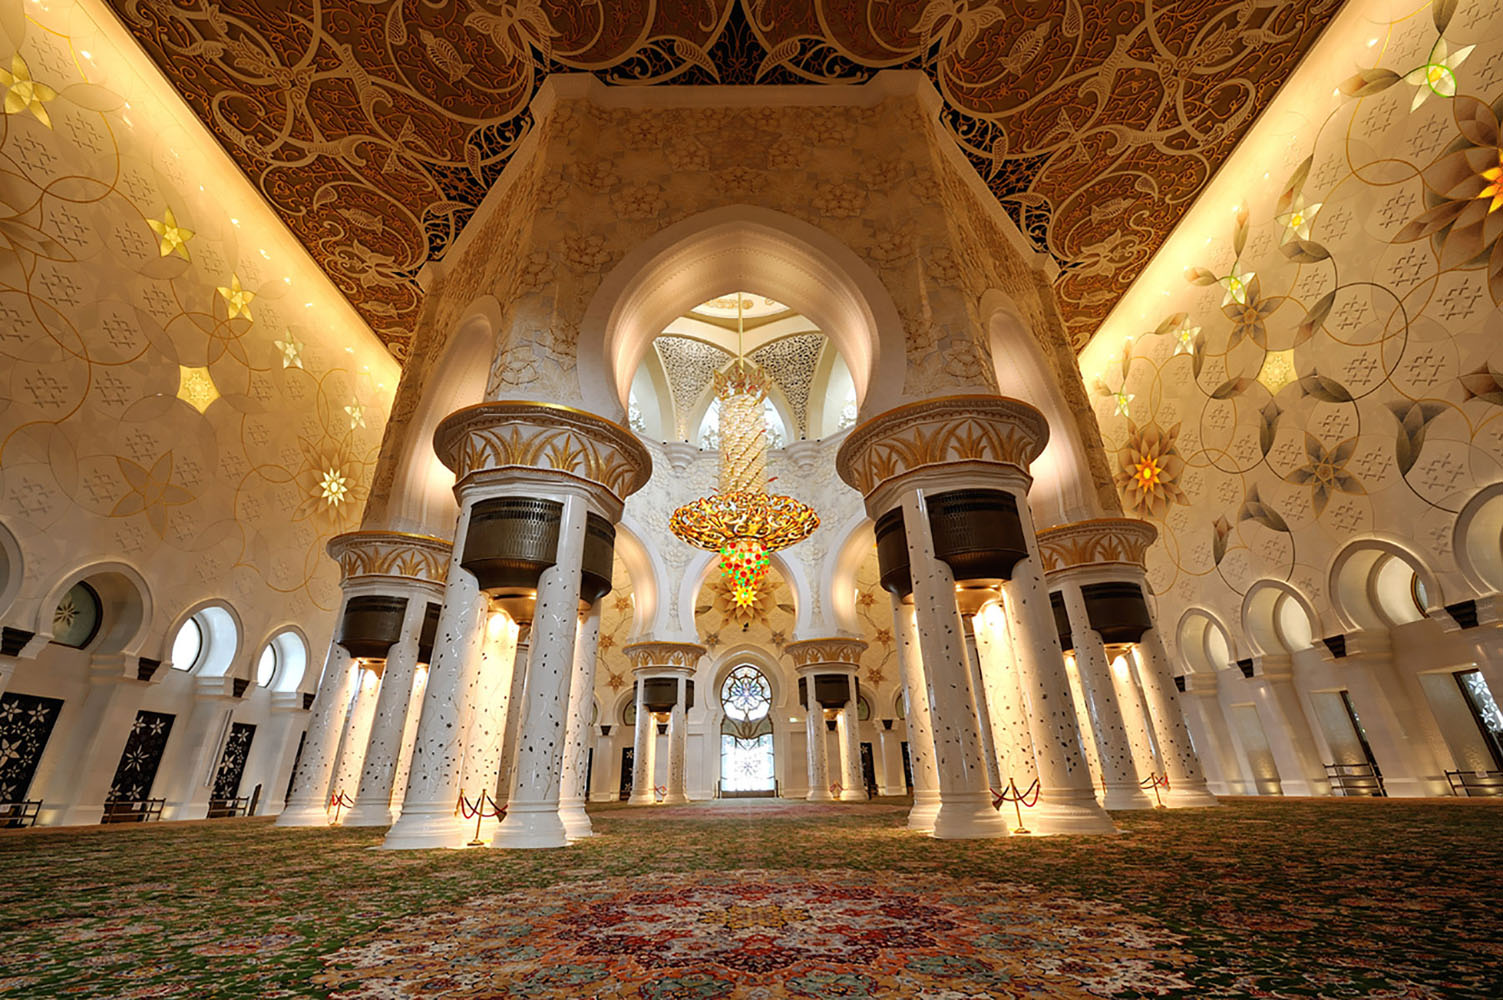 The interior of the Sheikh Zayed Grand Mosque